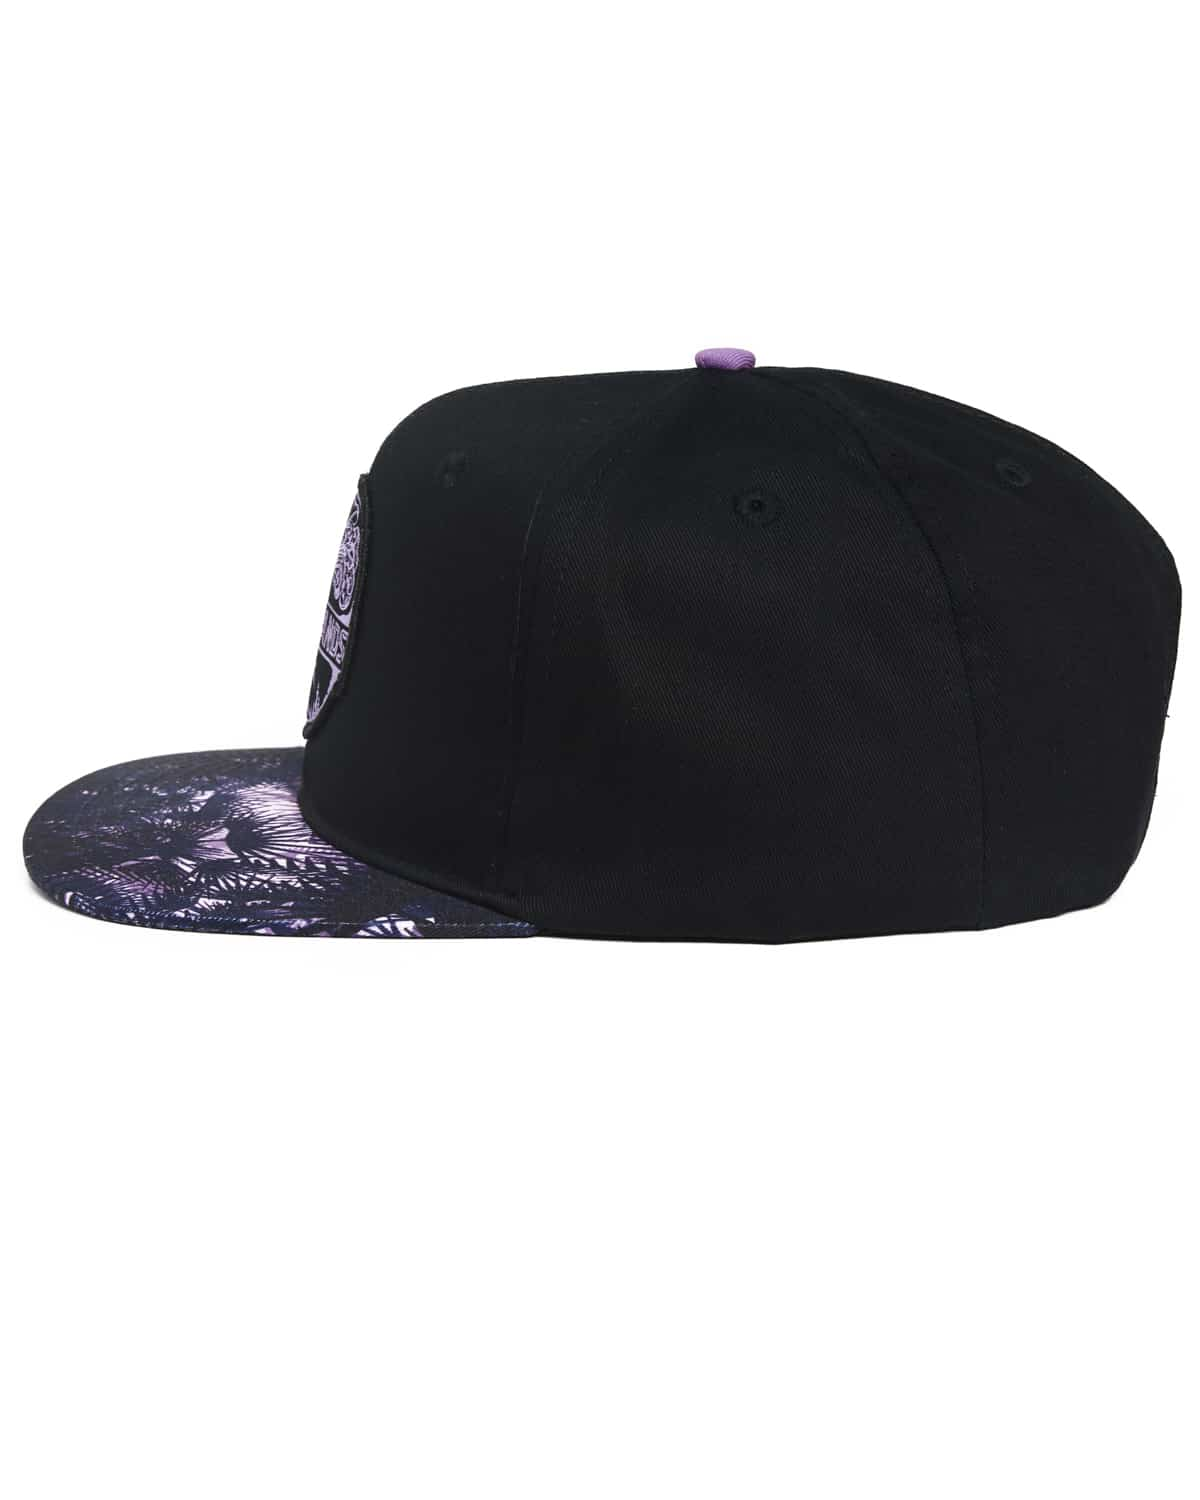 Lost Lands 'Tree of Life' Snapback (Black/Purple)